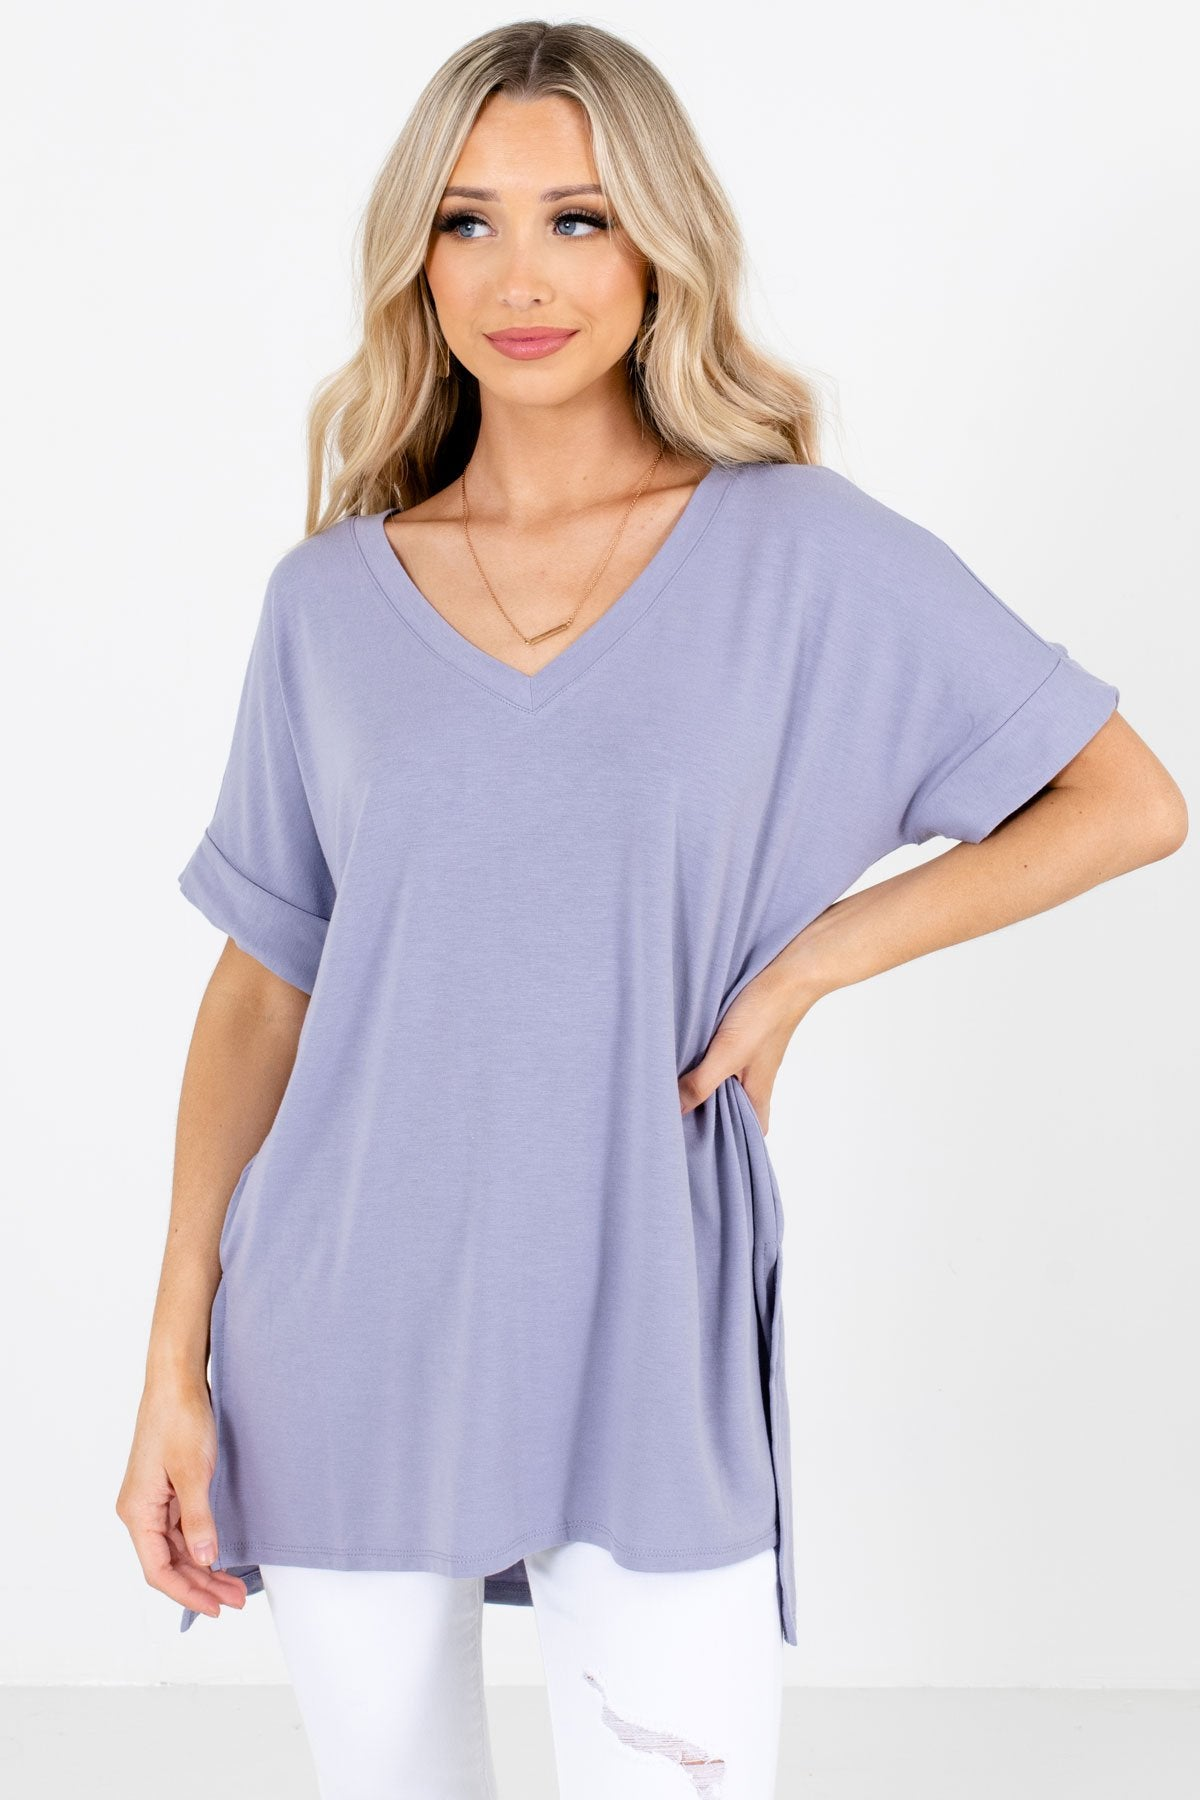 Lavender Purple V-Neckline Boutique Tops for Women